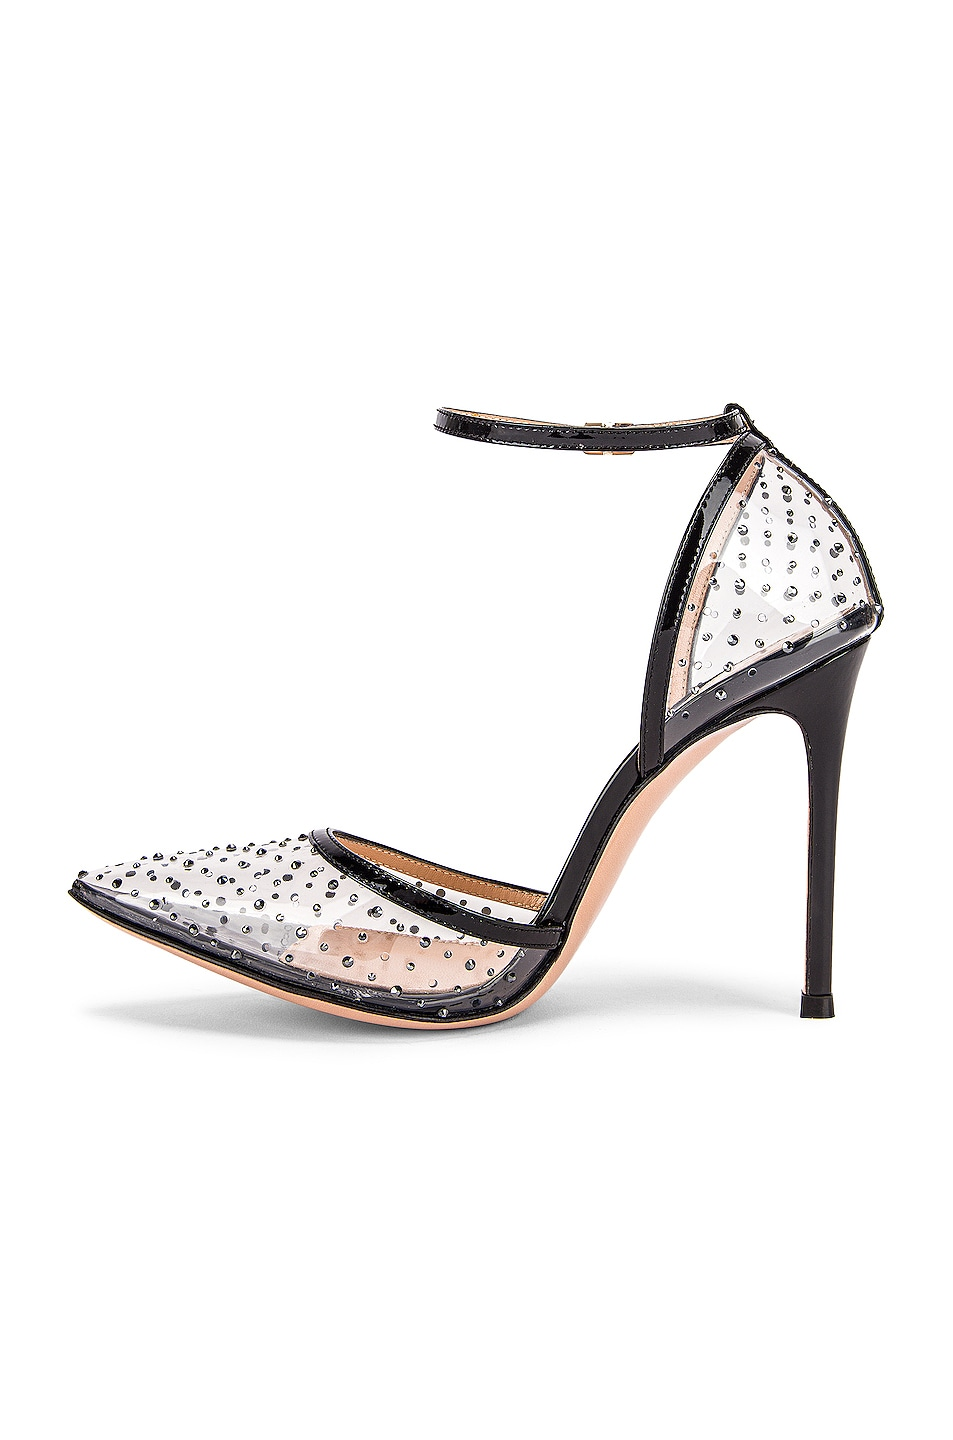 Image 5 of Gianvito Rossi Polka Dots Ankle Strap Heels in Black & Transparent